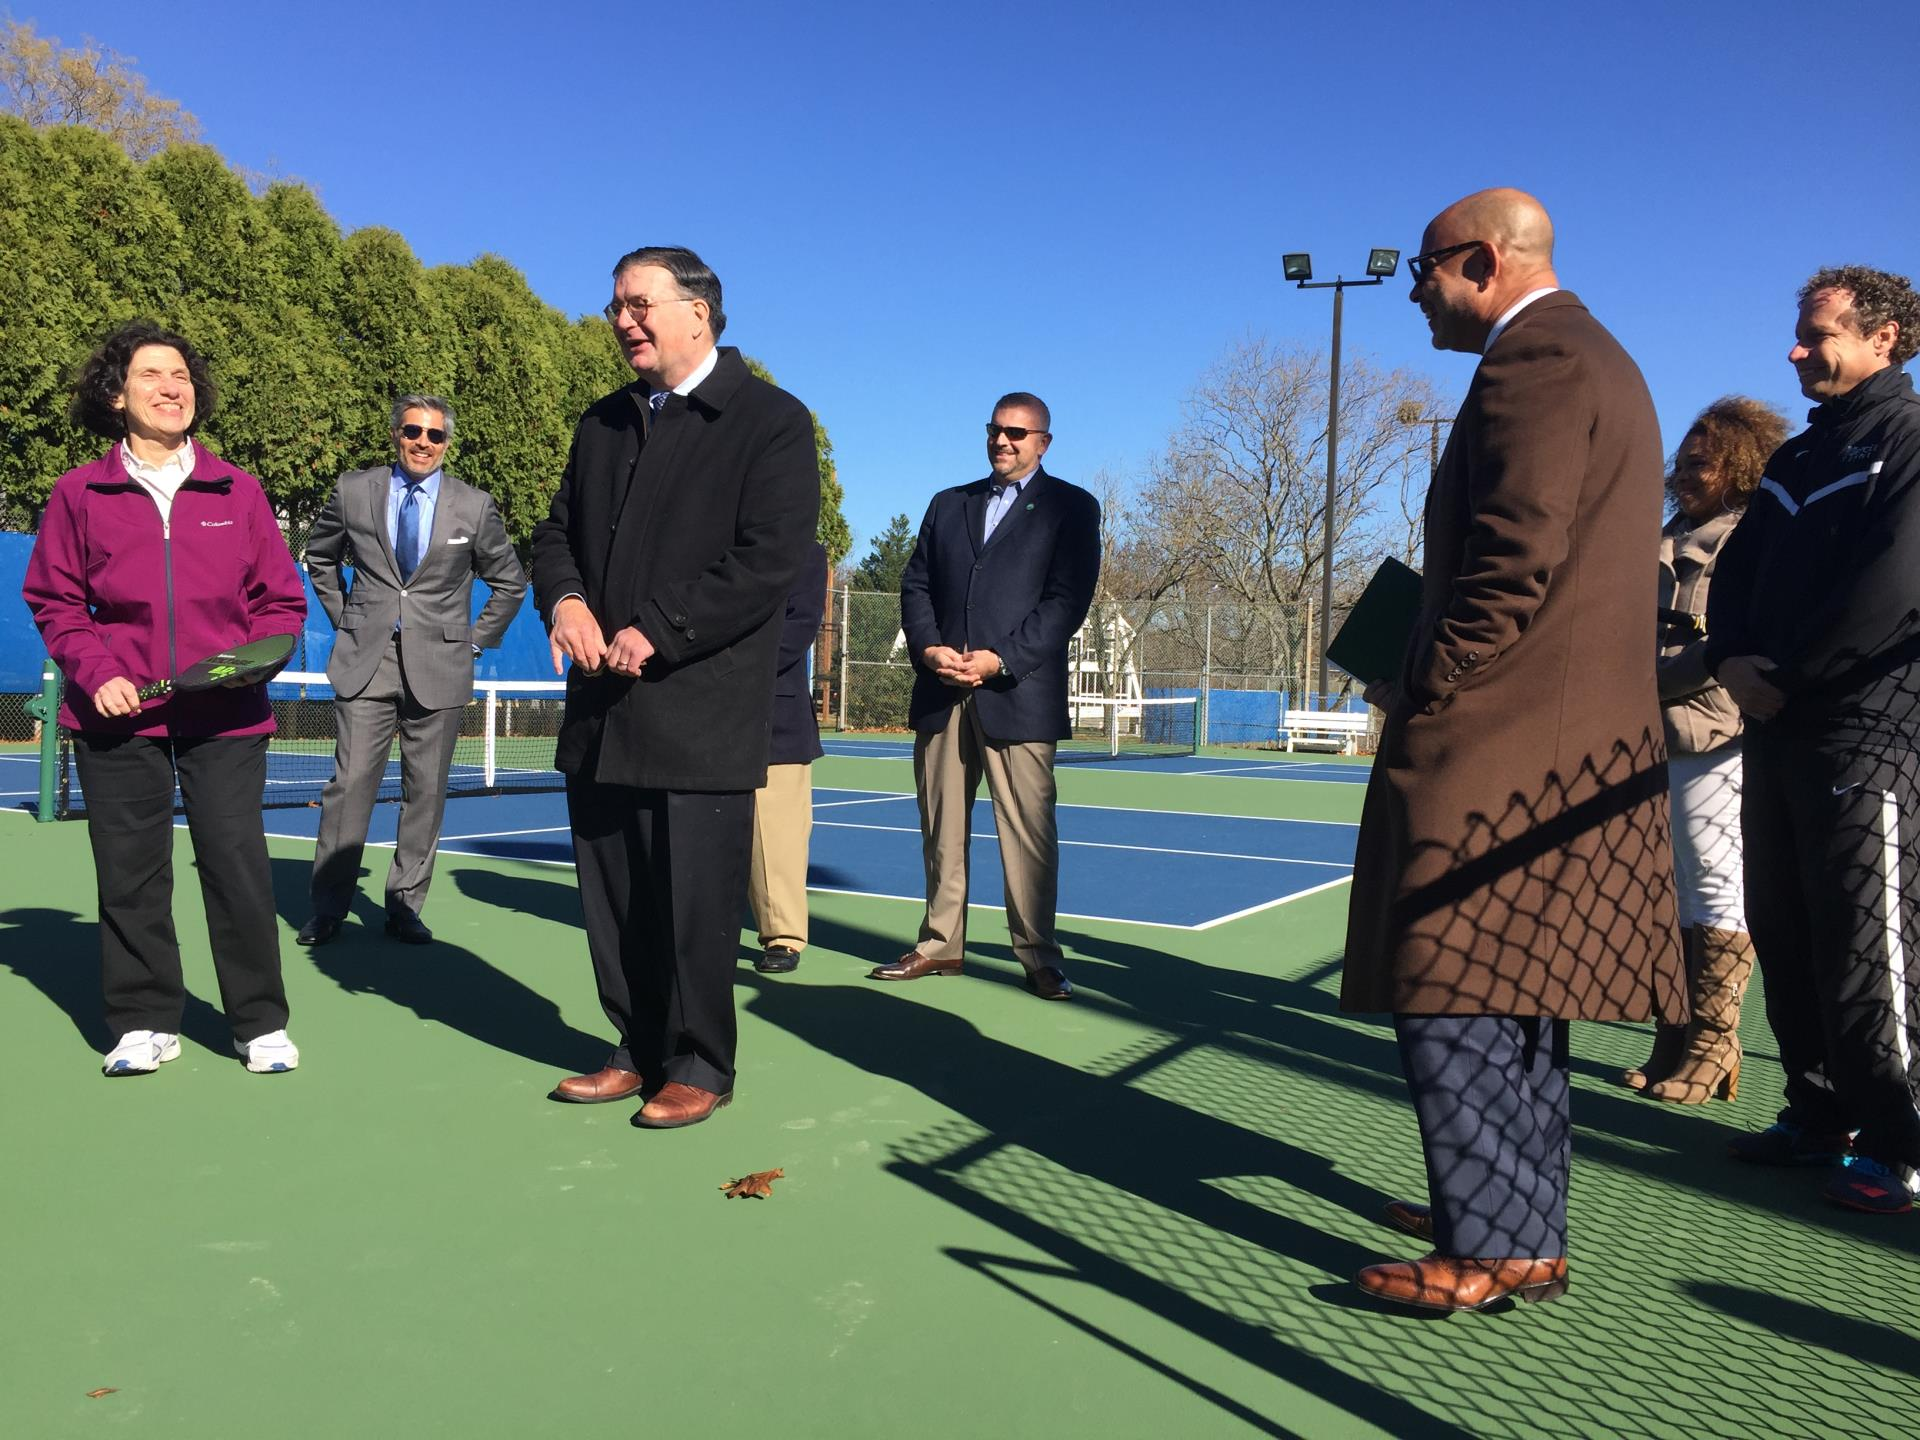 Pickleball courts dedication at Mercer County Tennis Center